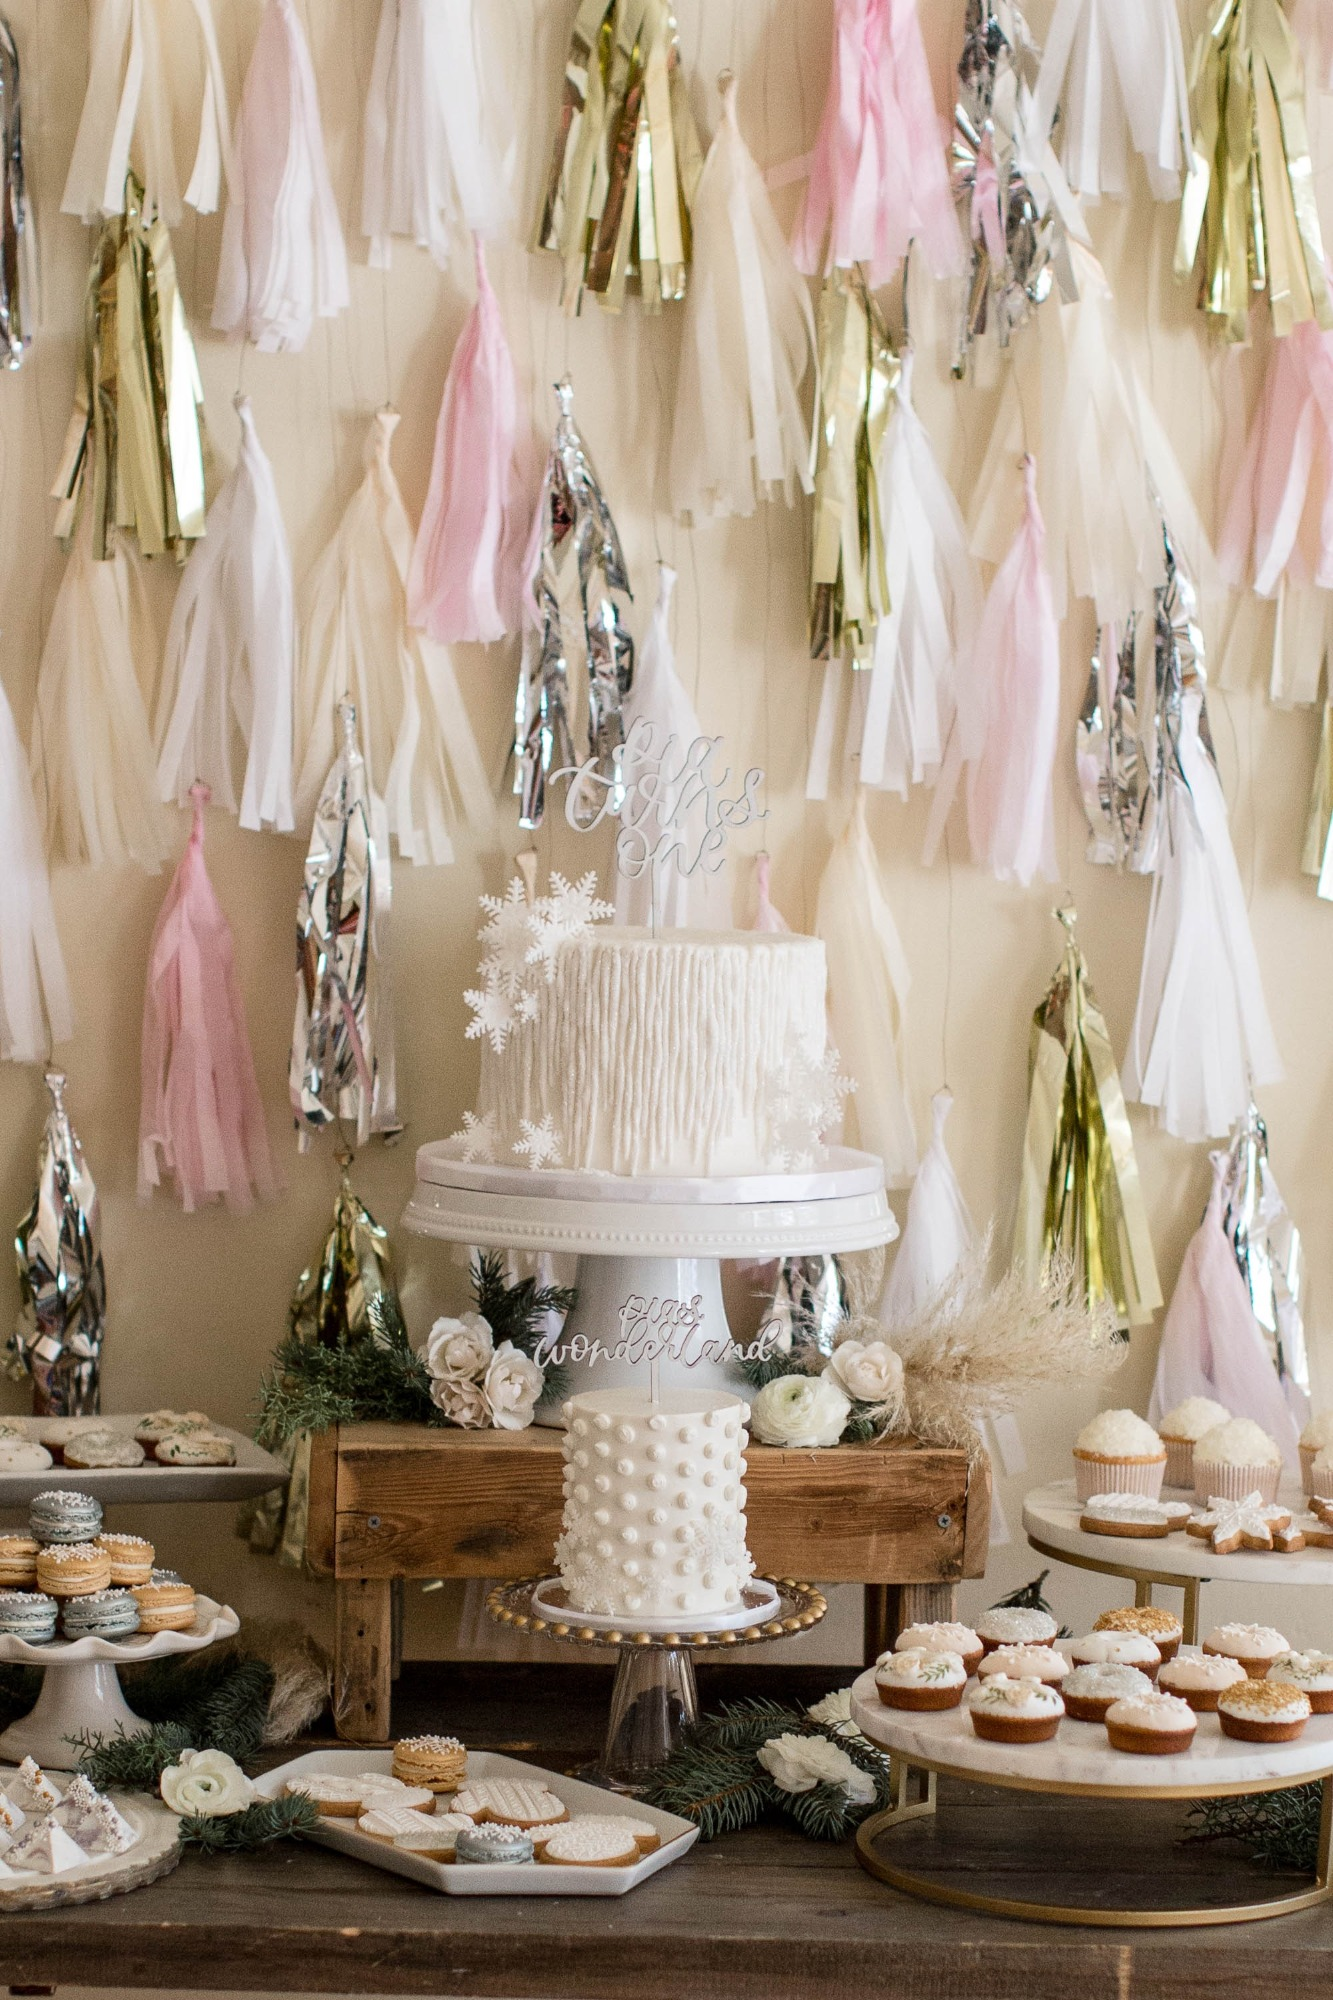 Custom Tassel Garland Backdrop by One Stylish Party